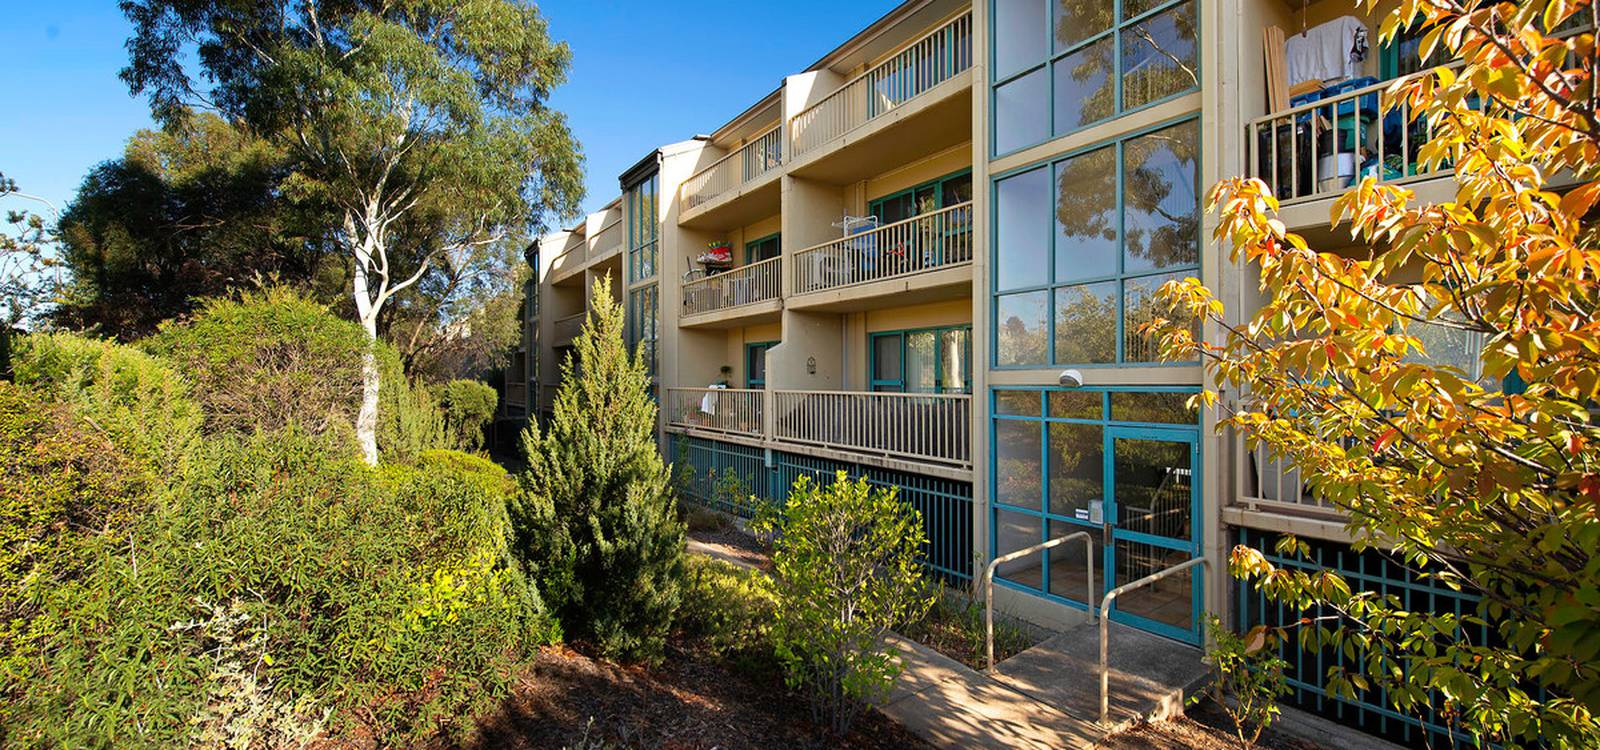 44/53 McMillan Crescent GRIFFITH, ACT 2603 - photo 1